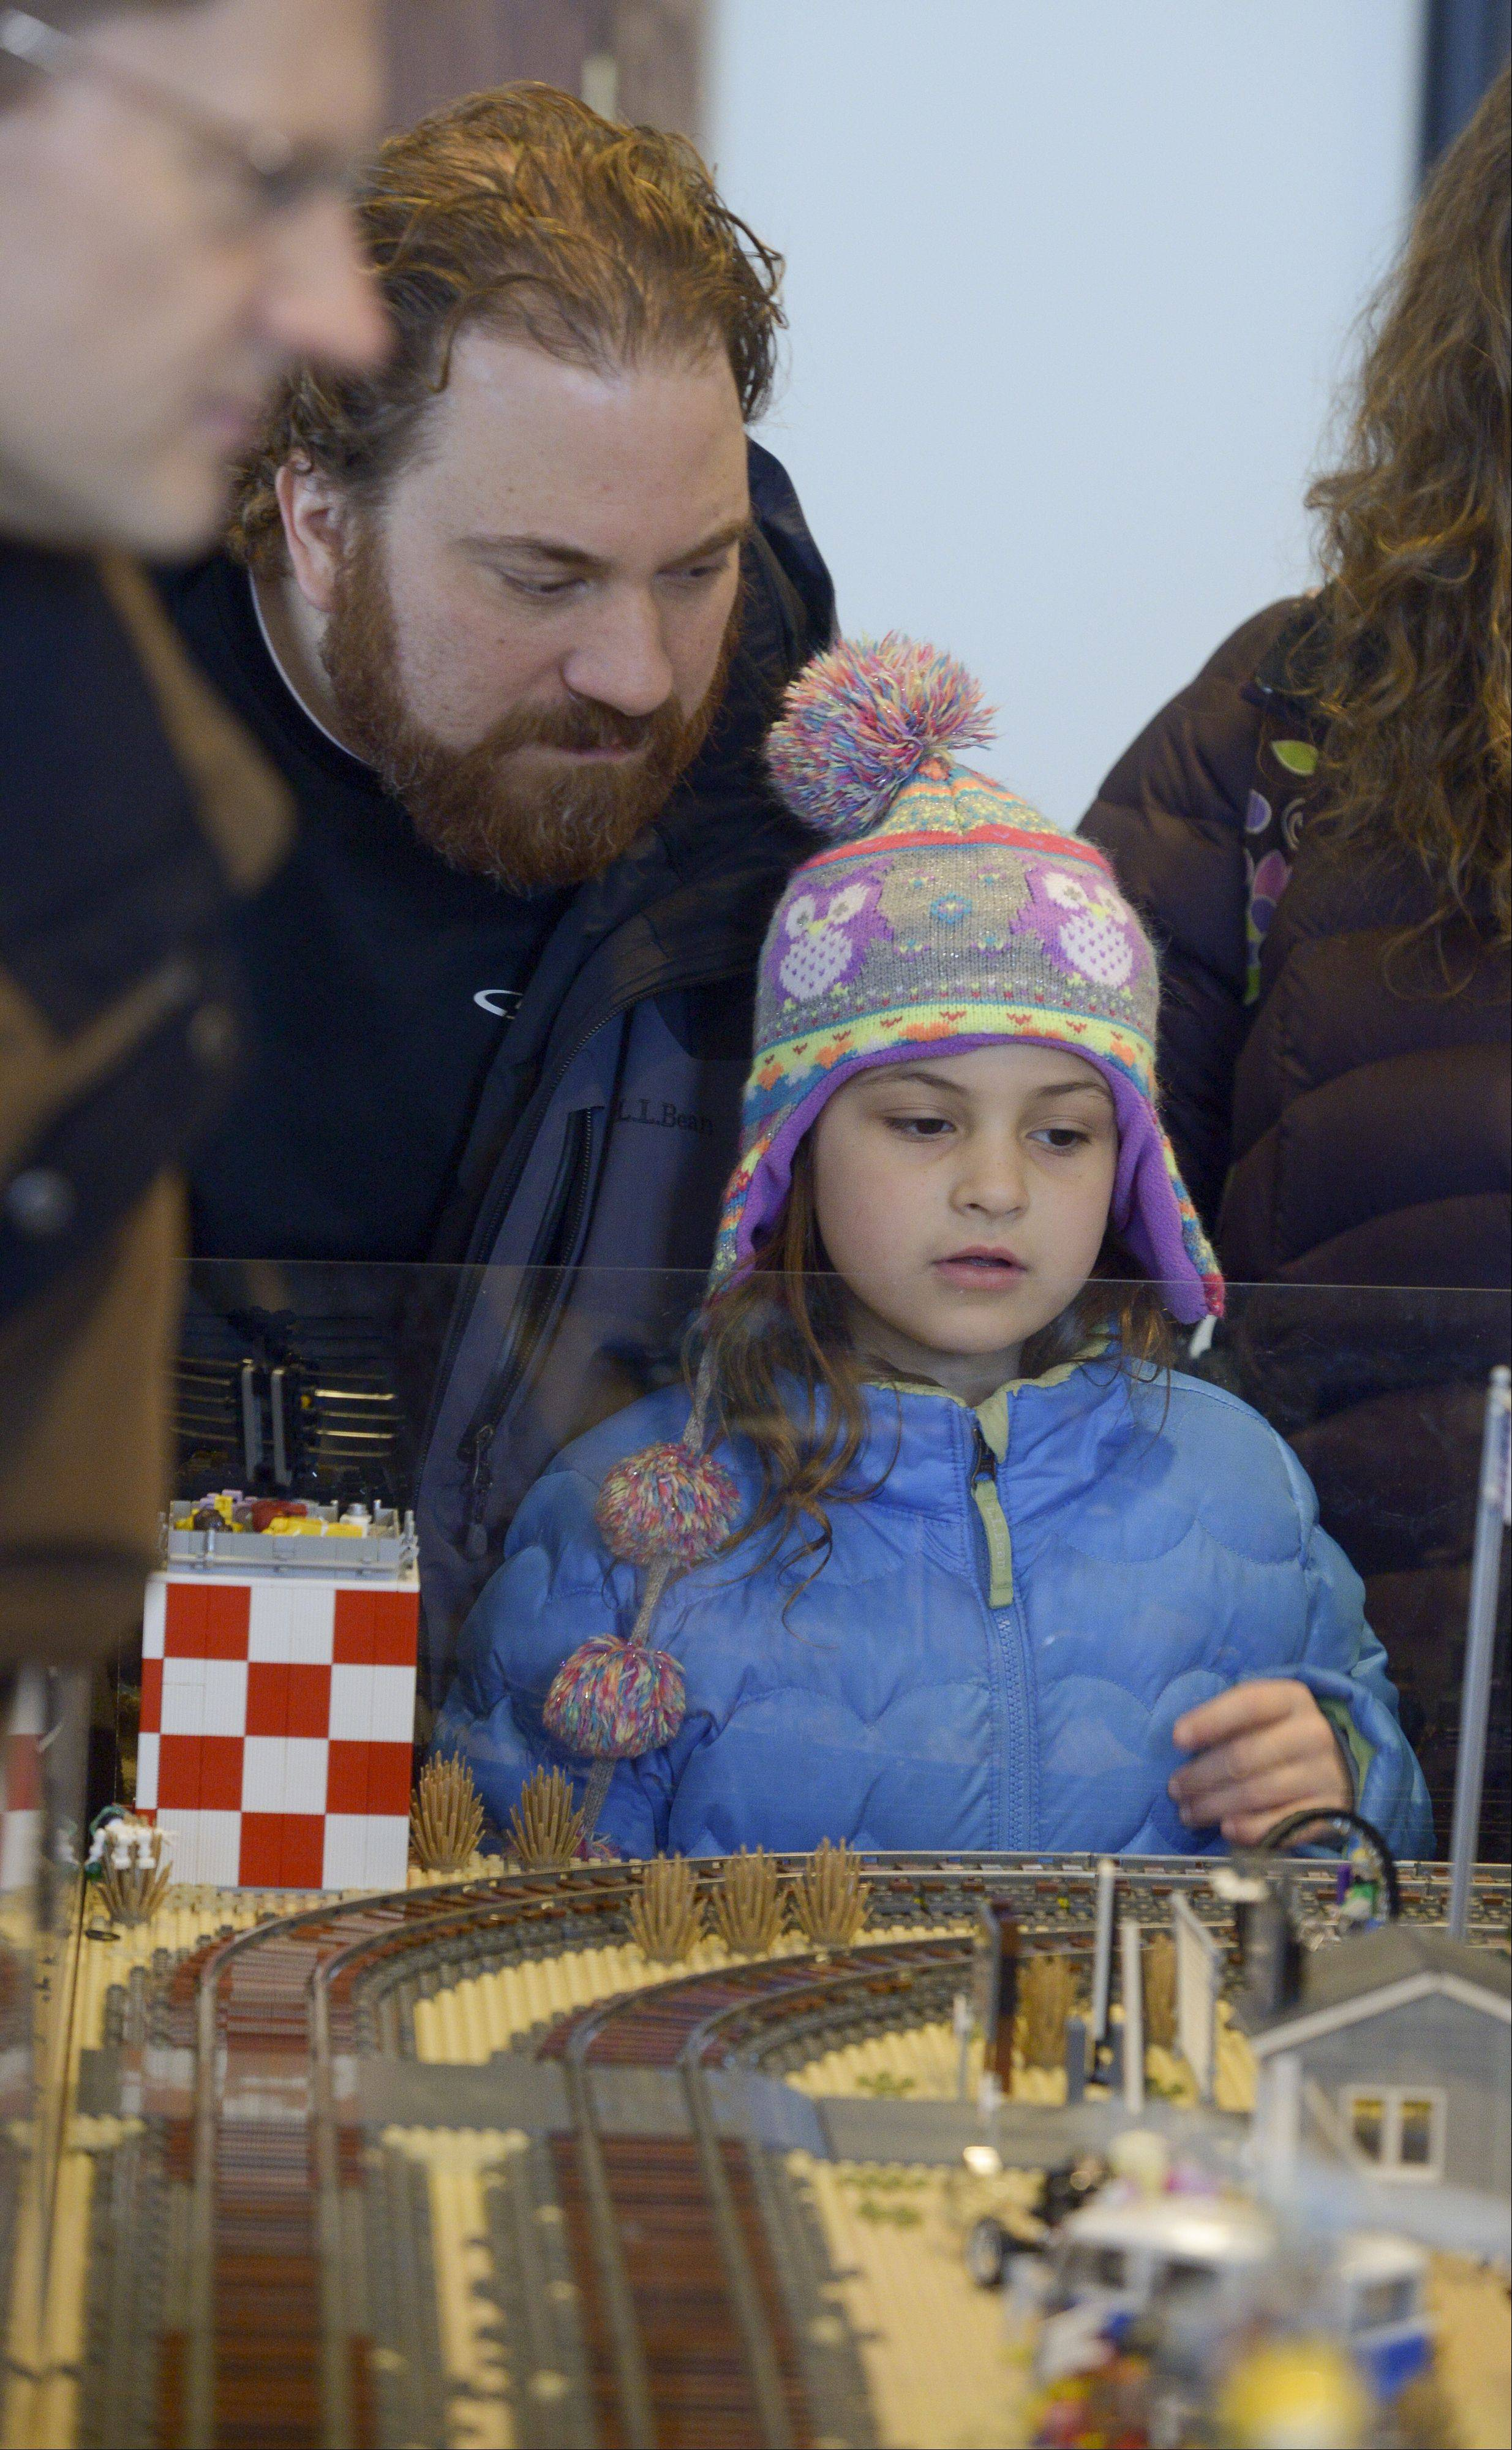 Albert Marquez of St. Charles and his daughter Penelope, 11, check out some of the Lego displays setup by the Northern Illinois Lego Train Club during their 12th annual Lego Train Show and Party on Sunday at Wheaton's Cantigny Park.